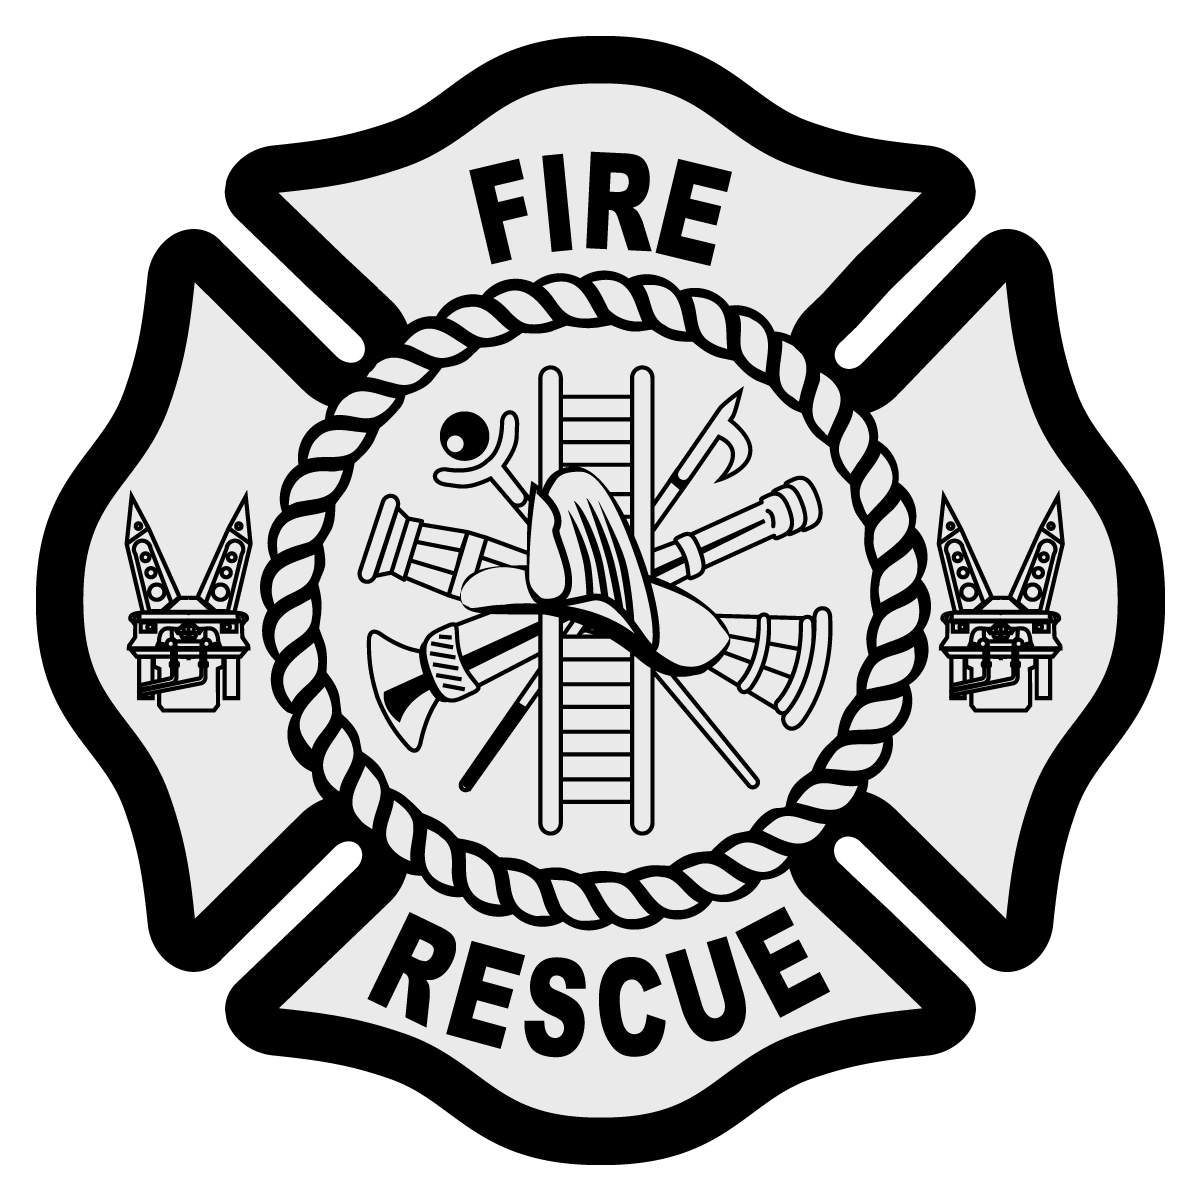 Fire Rescue Maltese Cross Decal - The Emergency Mall